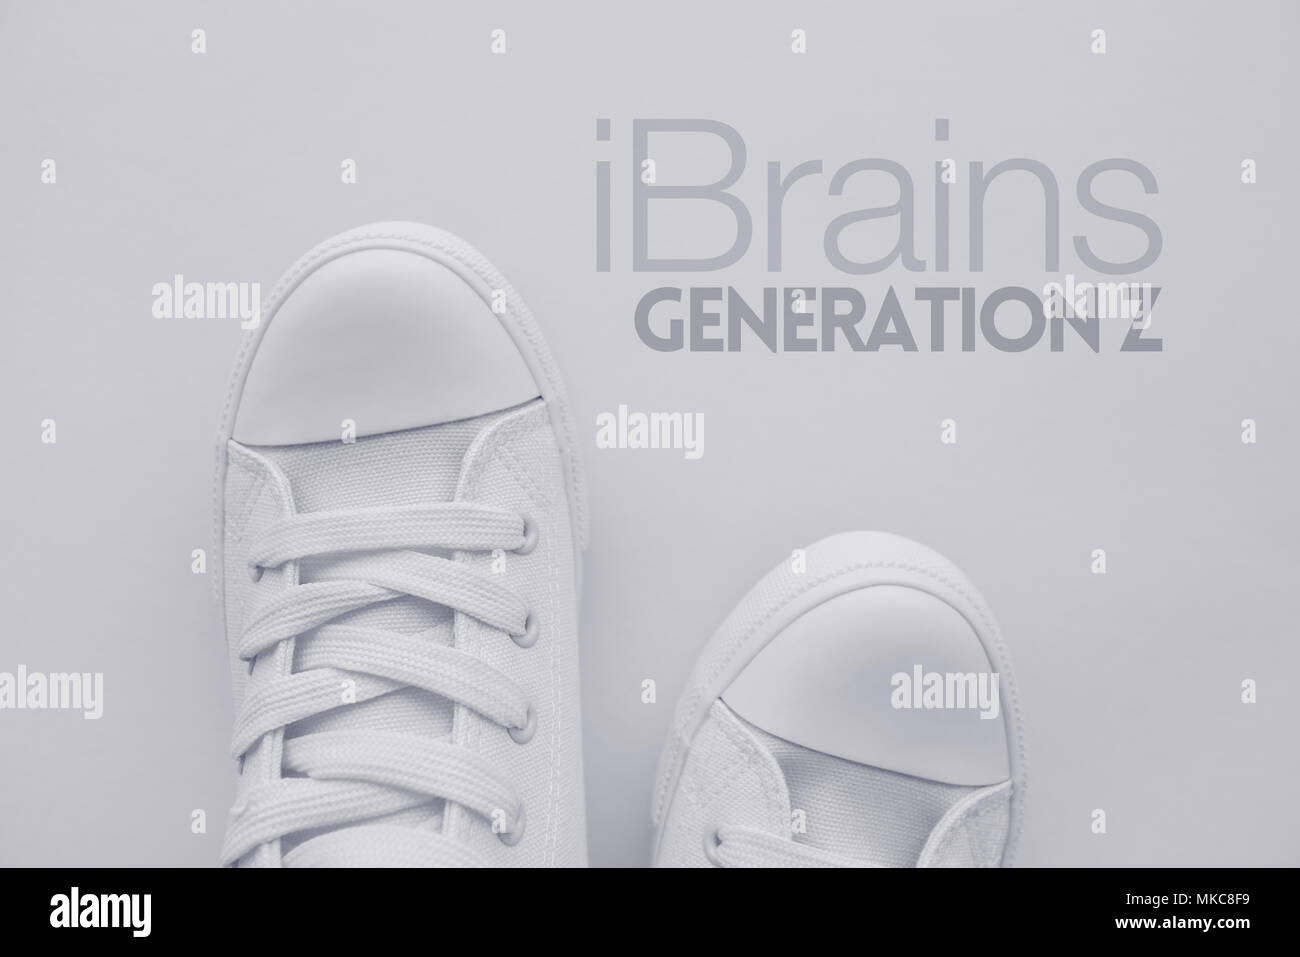 iBrains or Generation Z concept. Member of so called selfie generation in white casual canvas shoes standing over the title, top view - Stock Image